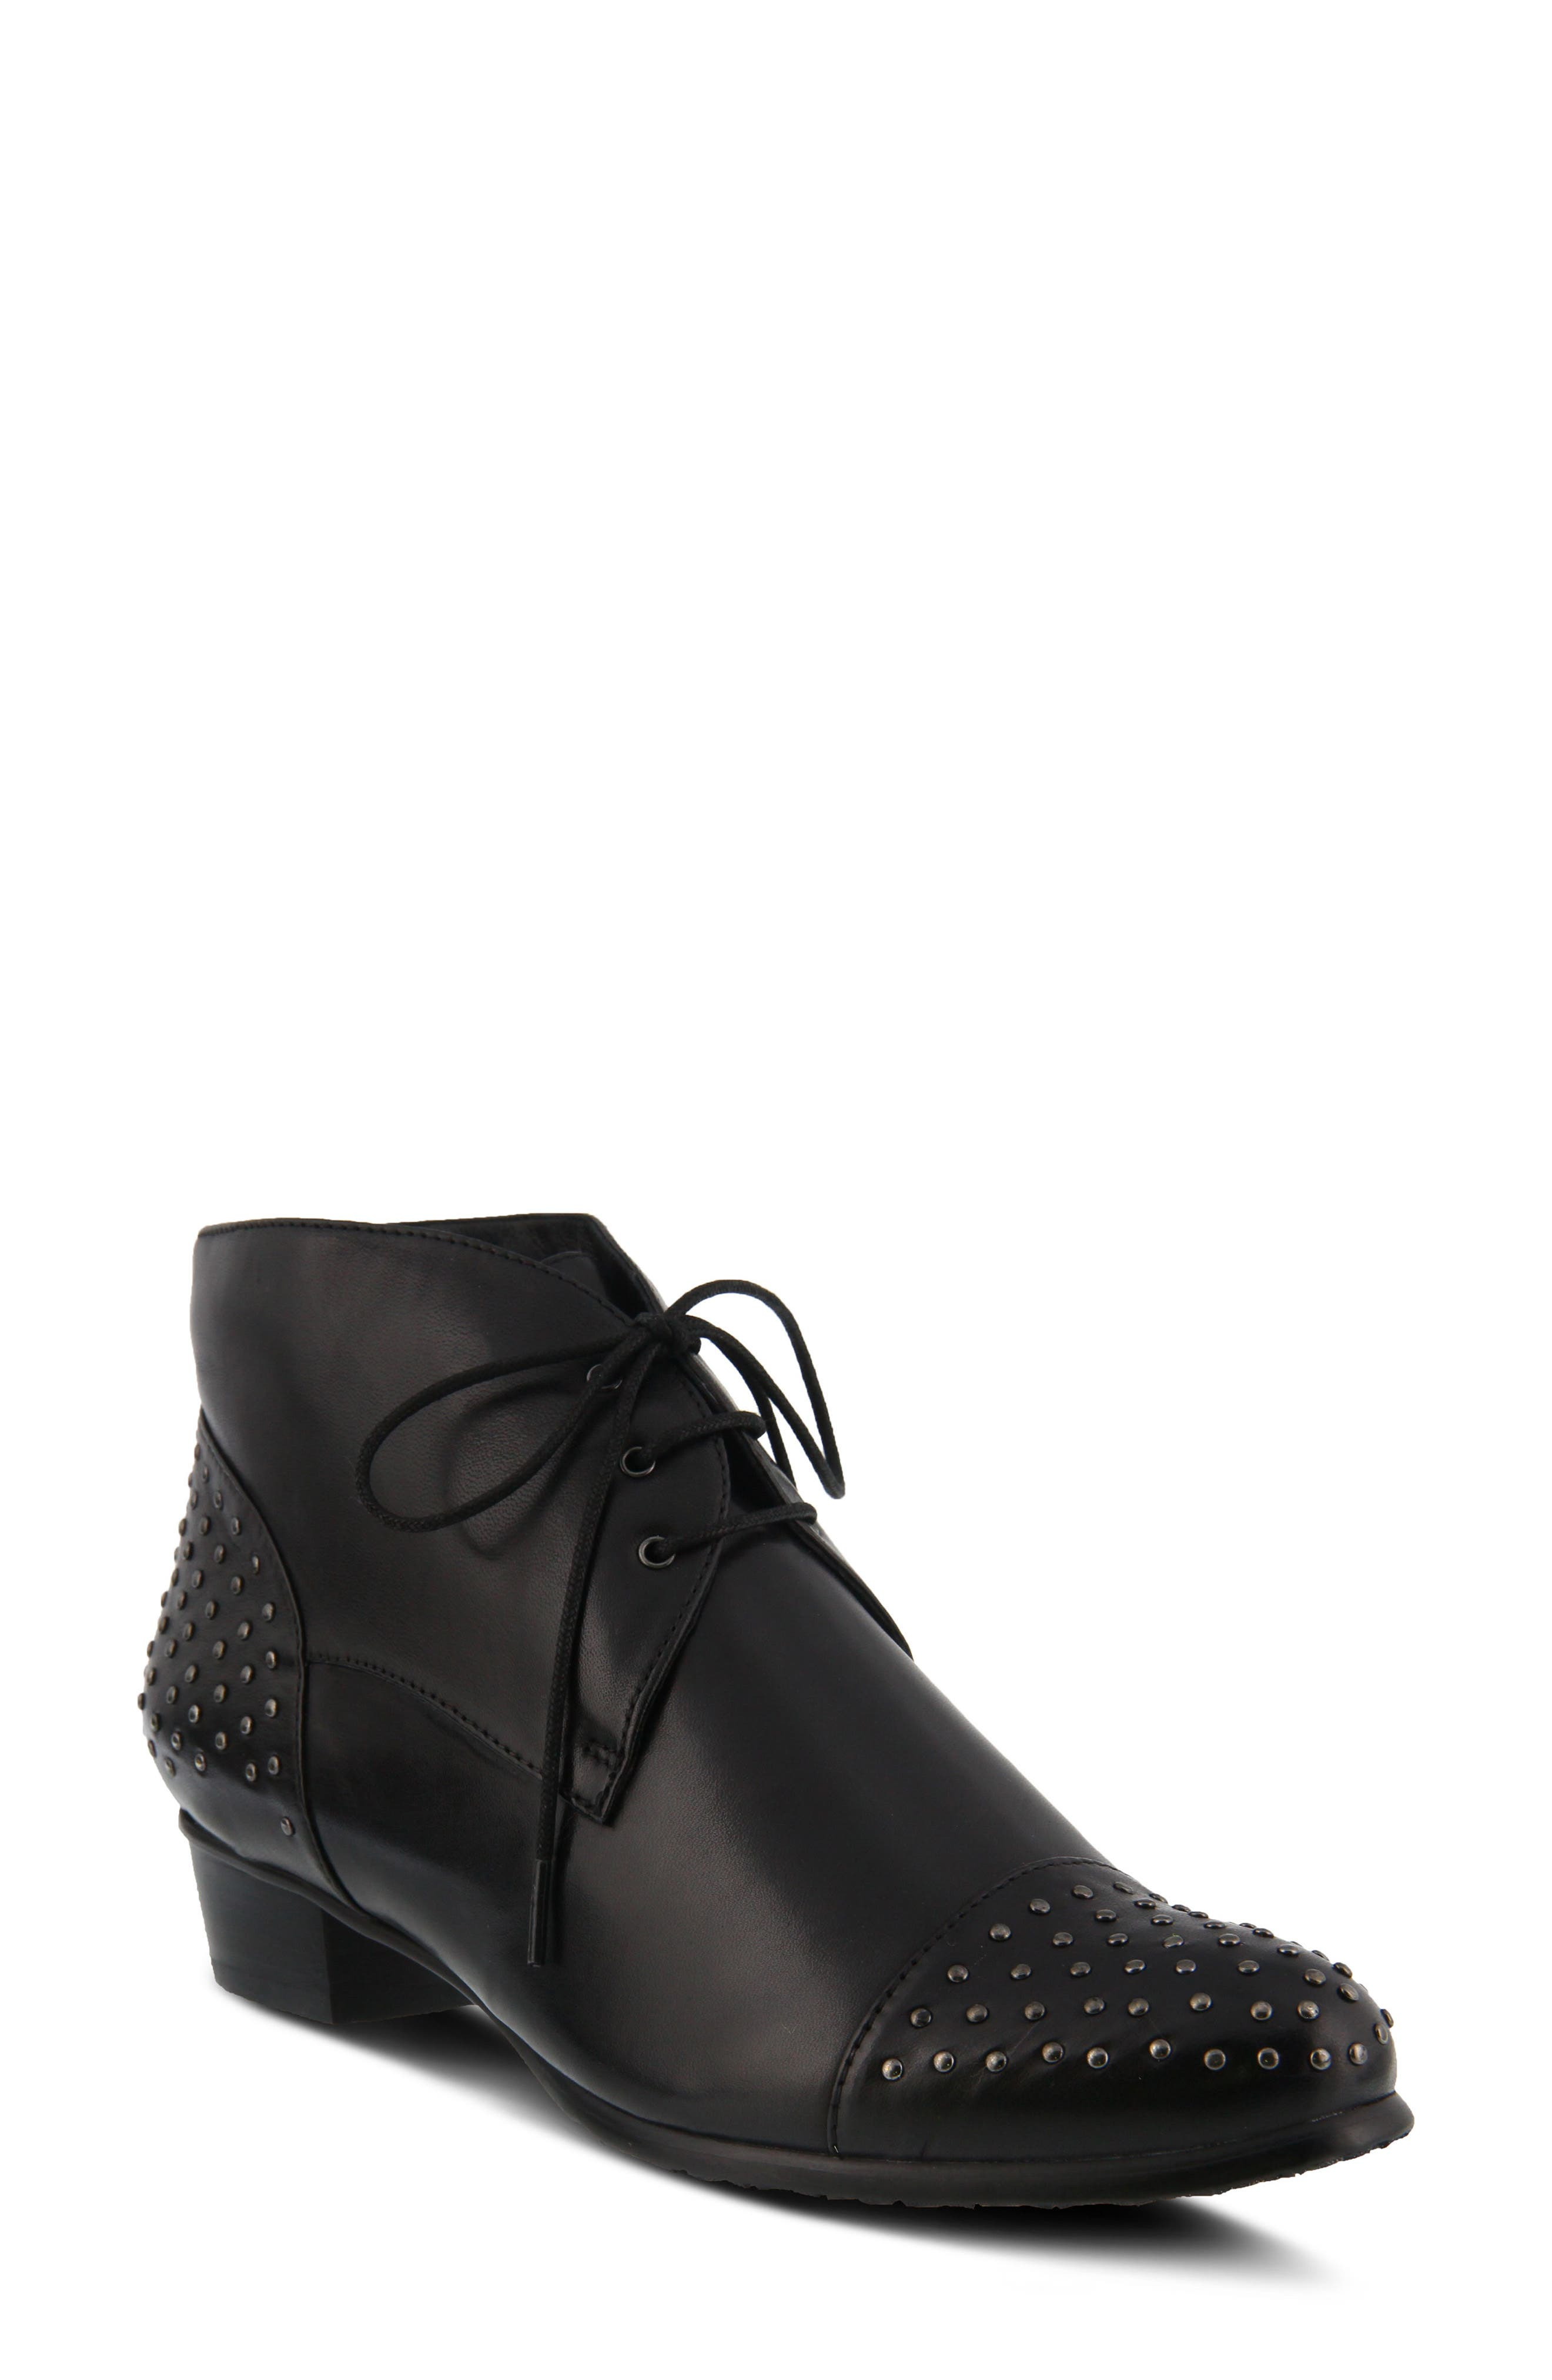 Giovanna Studded Bootie,                             Main thumbnail 1, color,                             BLACK LEATHER